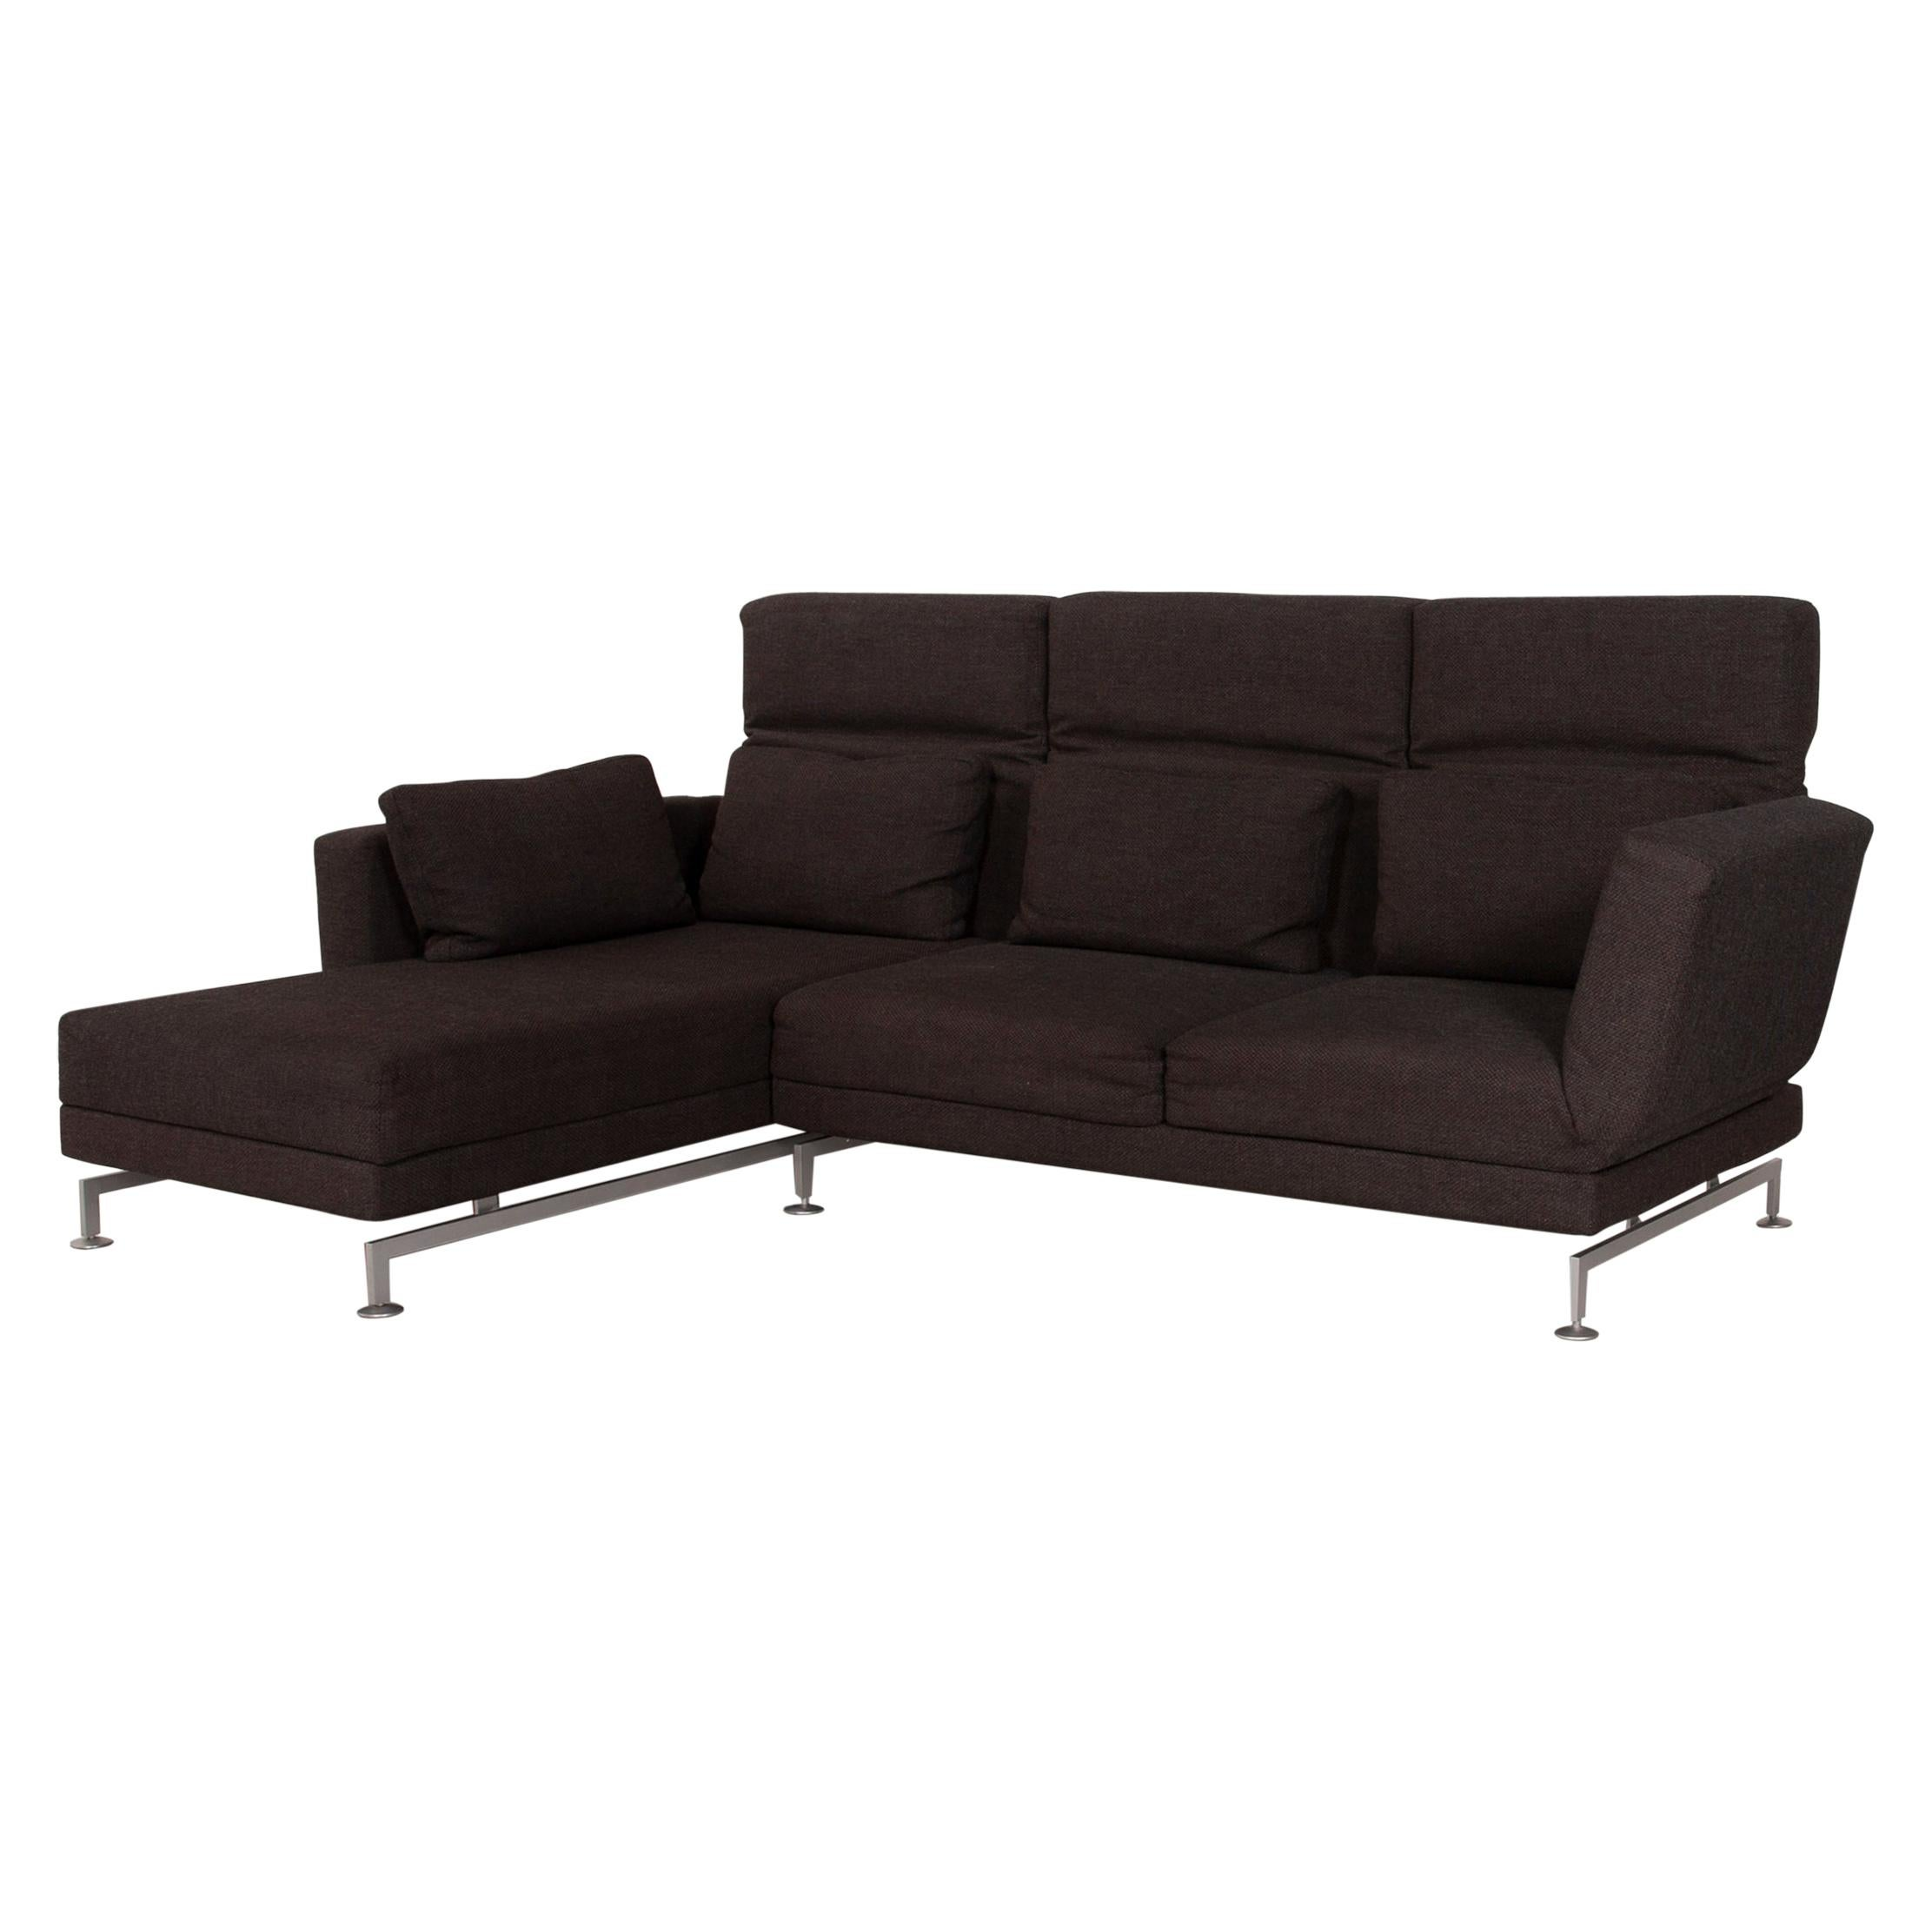 Brühl & Sippold Moule Fabric Sofa Brown Corner Sofa Function Relaxation